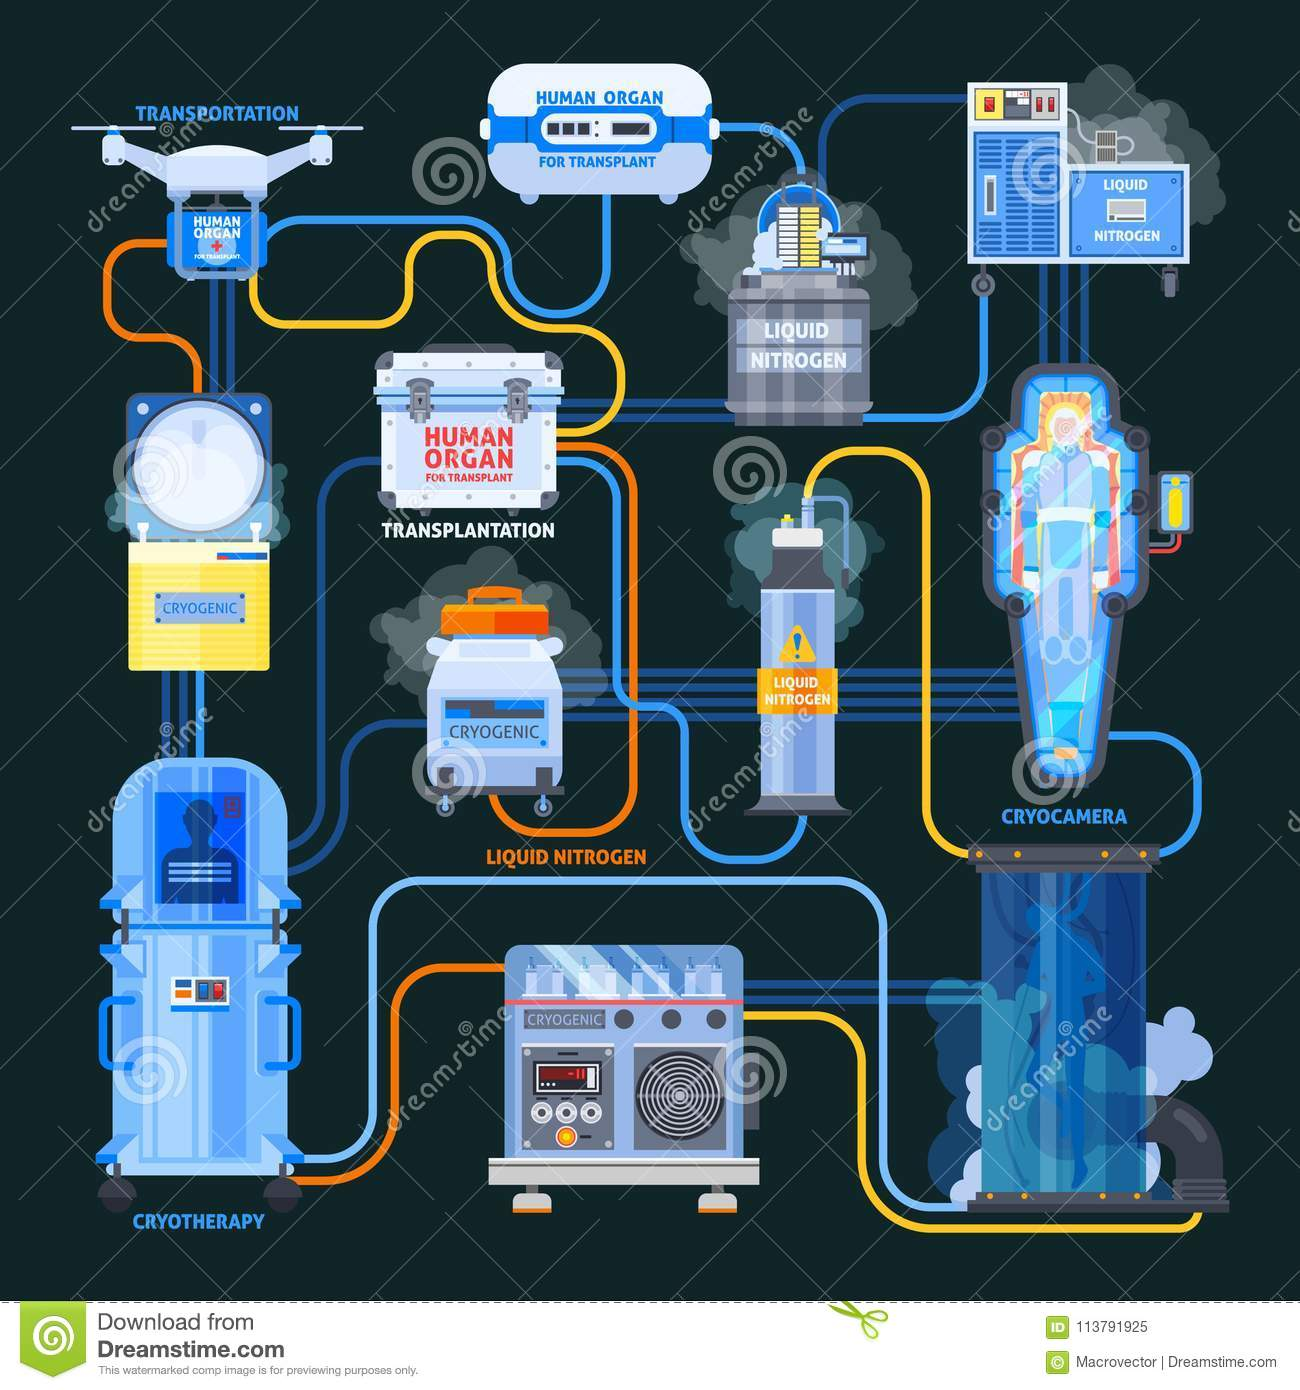 hight resolution of cryonics flat flowchart equipment with liquid nitrogen and human organs for transplantation on black background vector illustration